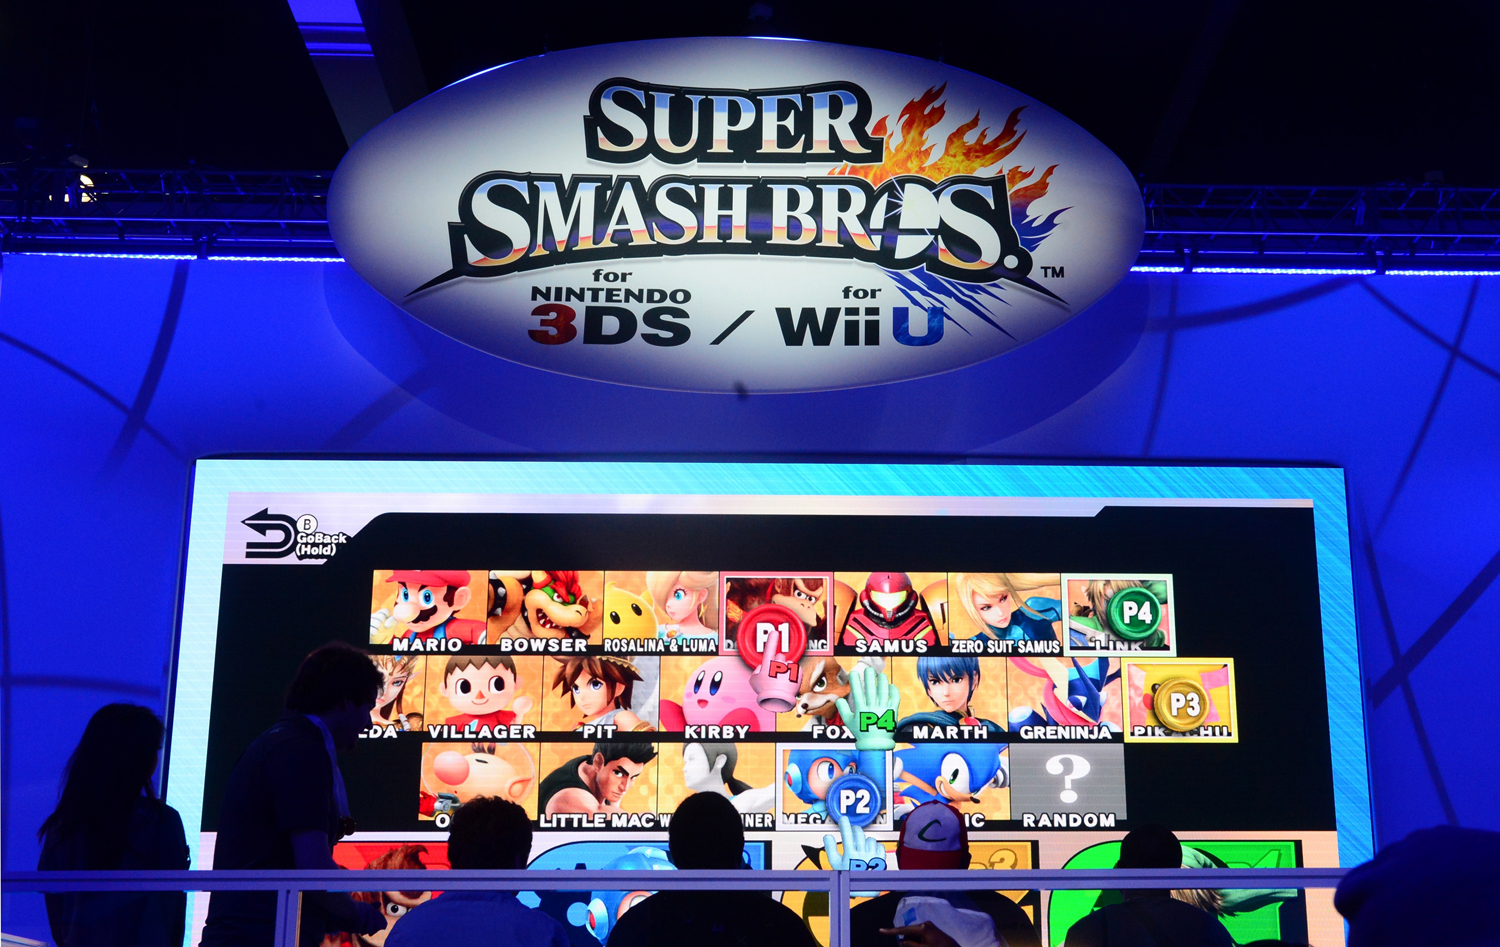 Gamers play Super Smash Bros. for Nintendo 3Ds at the annual E3 video game extravaganza in Los Angeles, California on June 10, 2014.